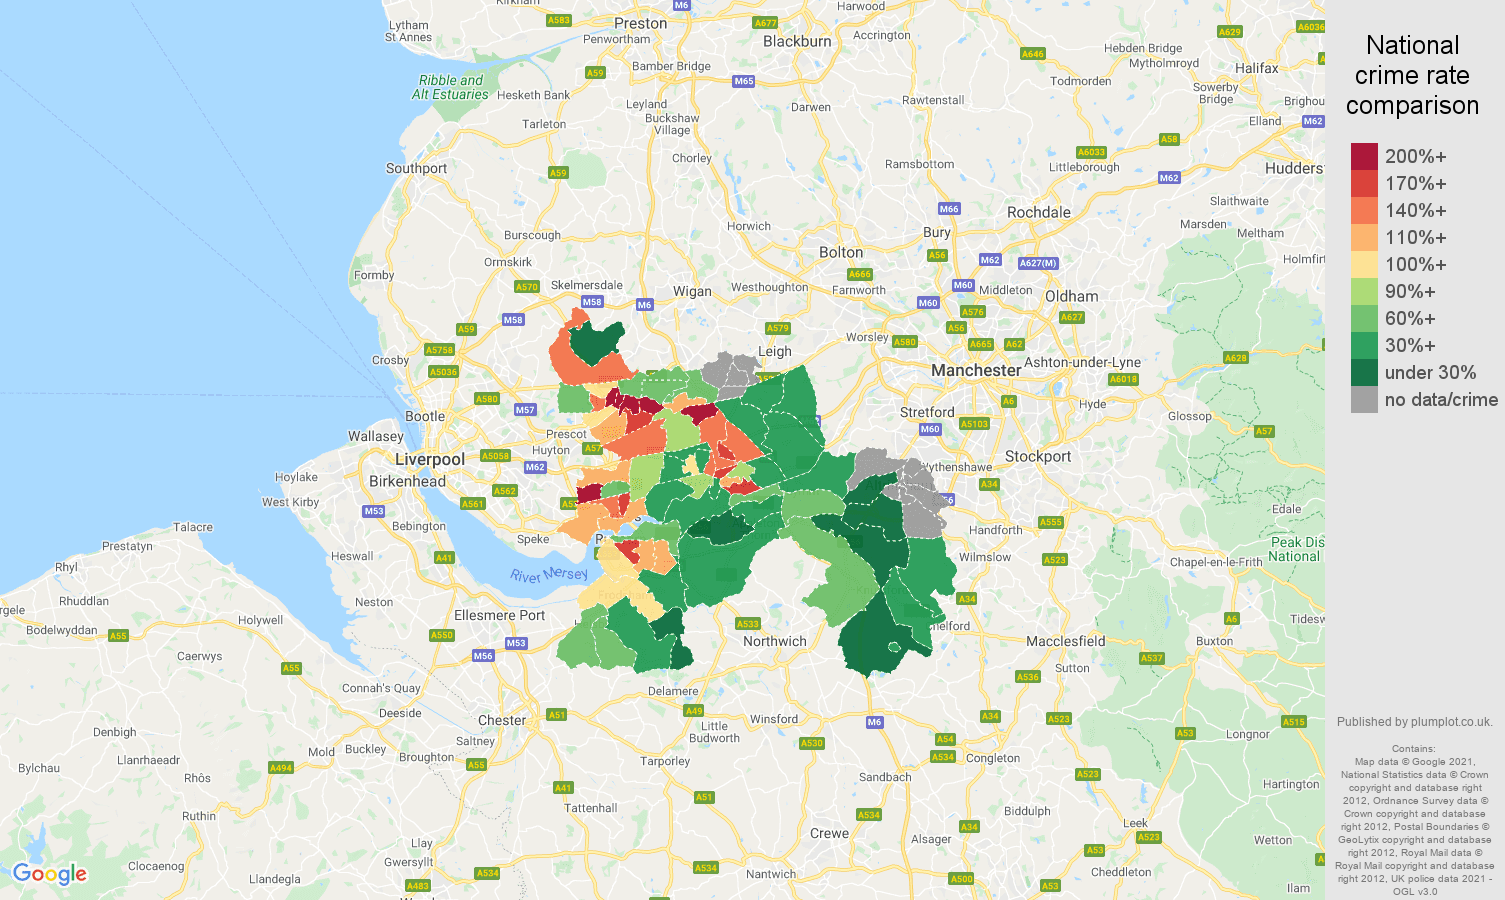 Warrington criminal damage and arson crime rate comparison map